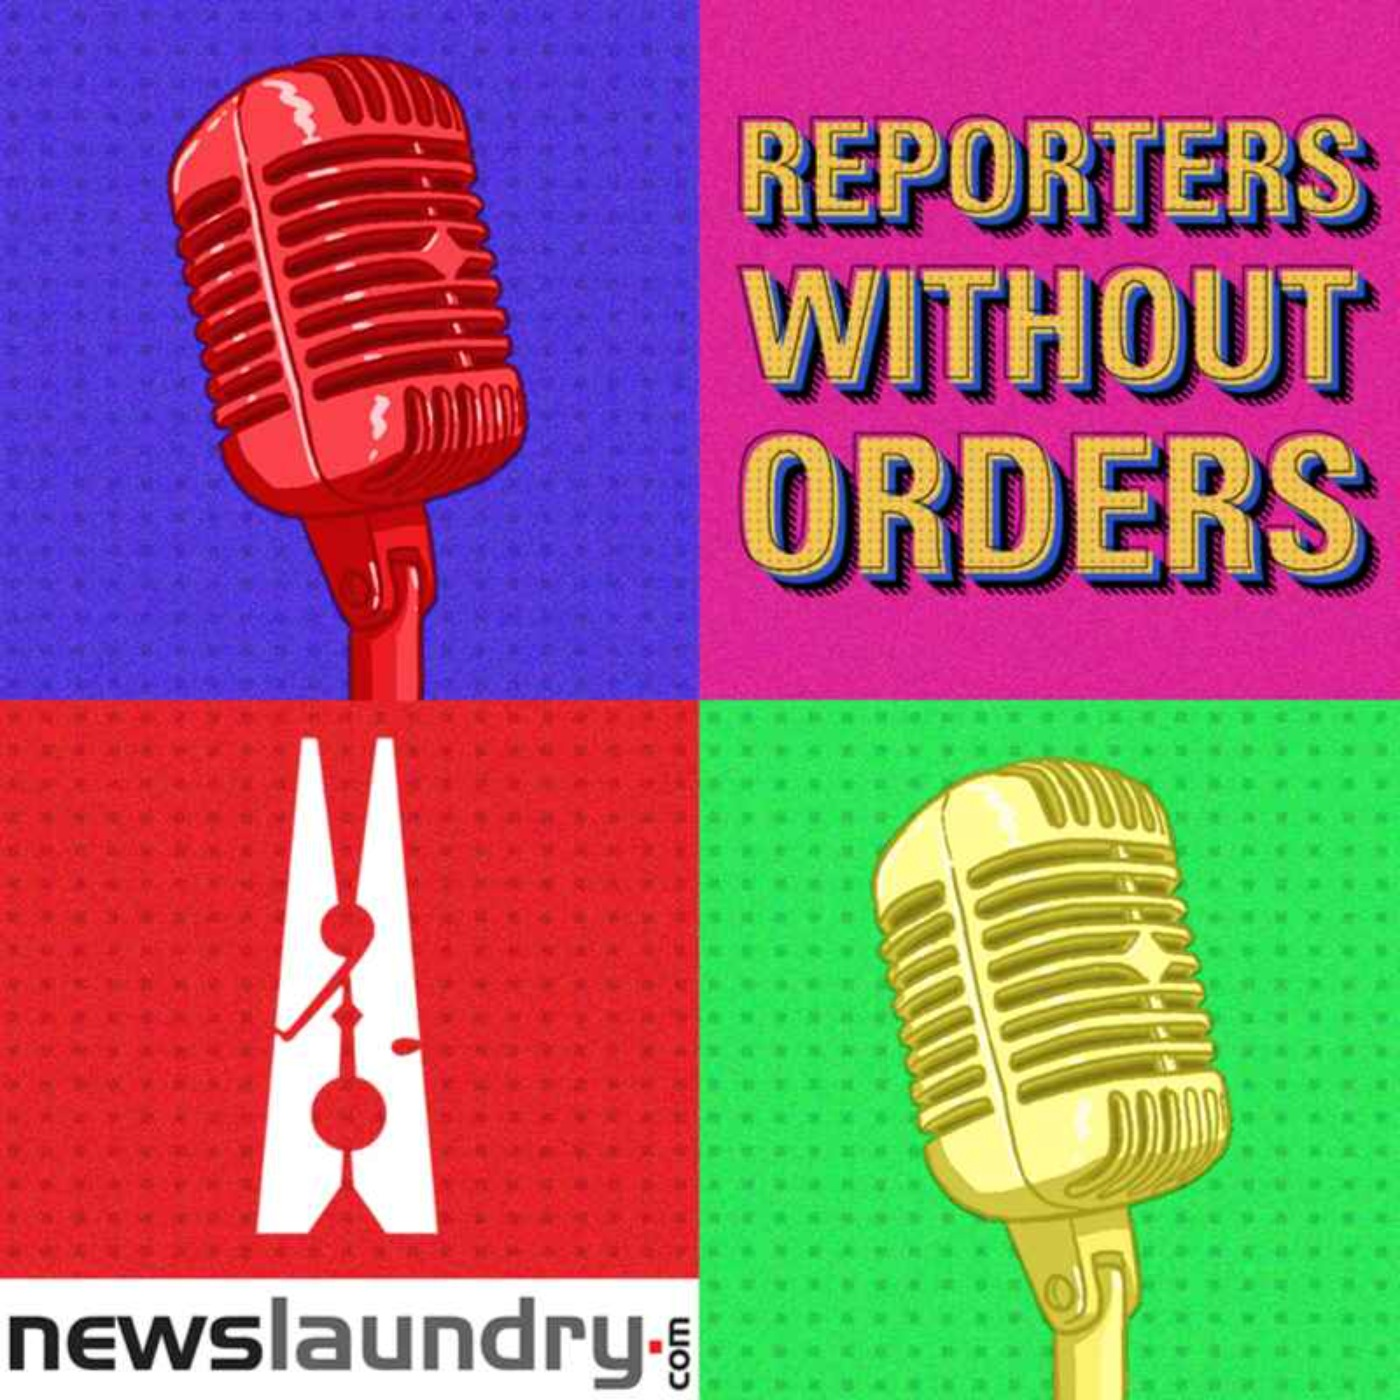 Reporters Without Orders Ep 156: Dainik Jagran's PR campaign for UP and Disha Ravi's bail